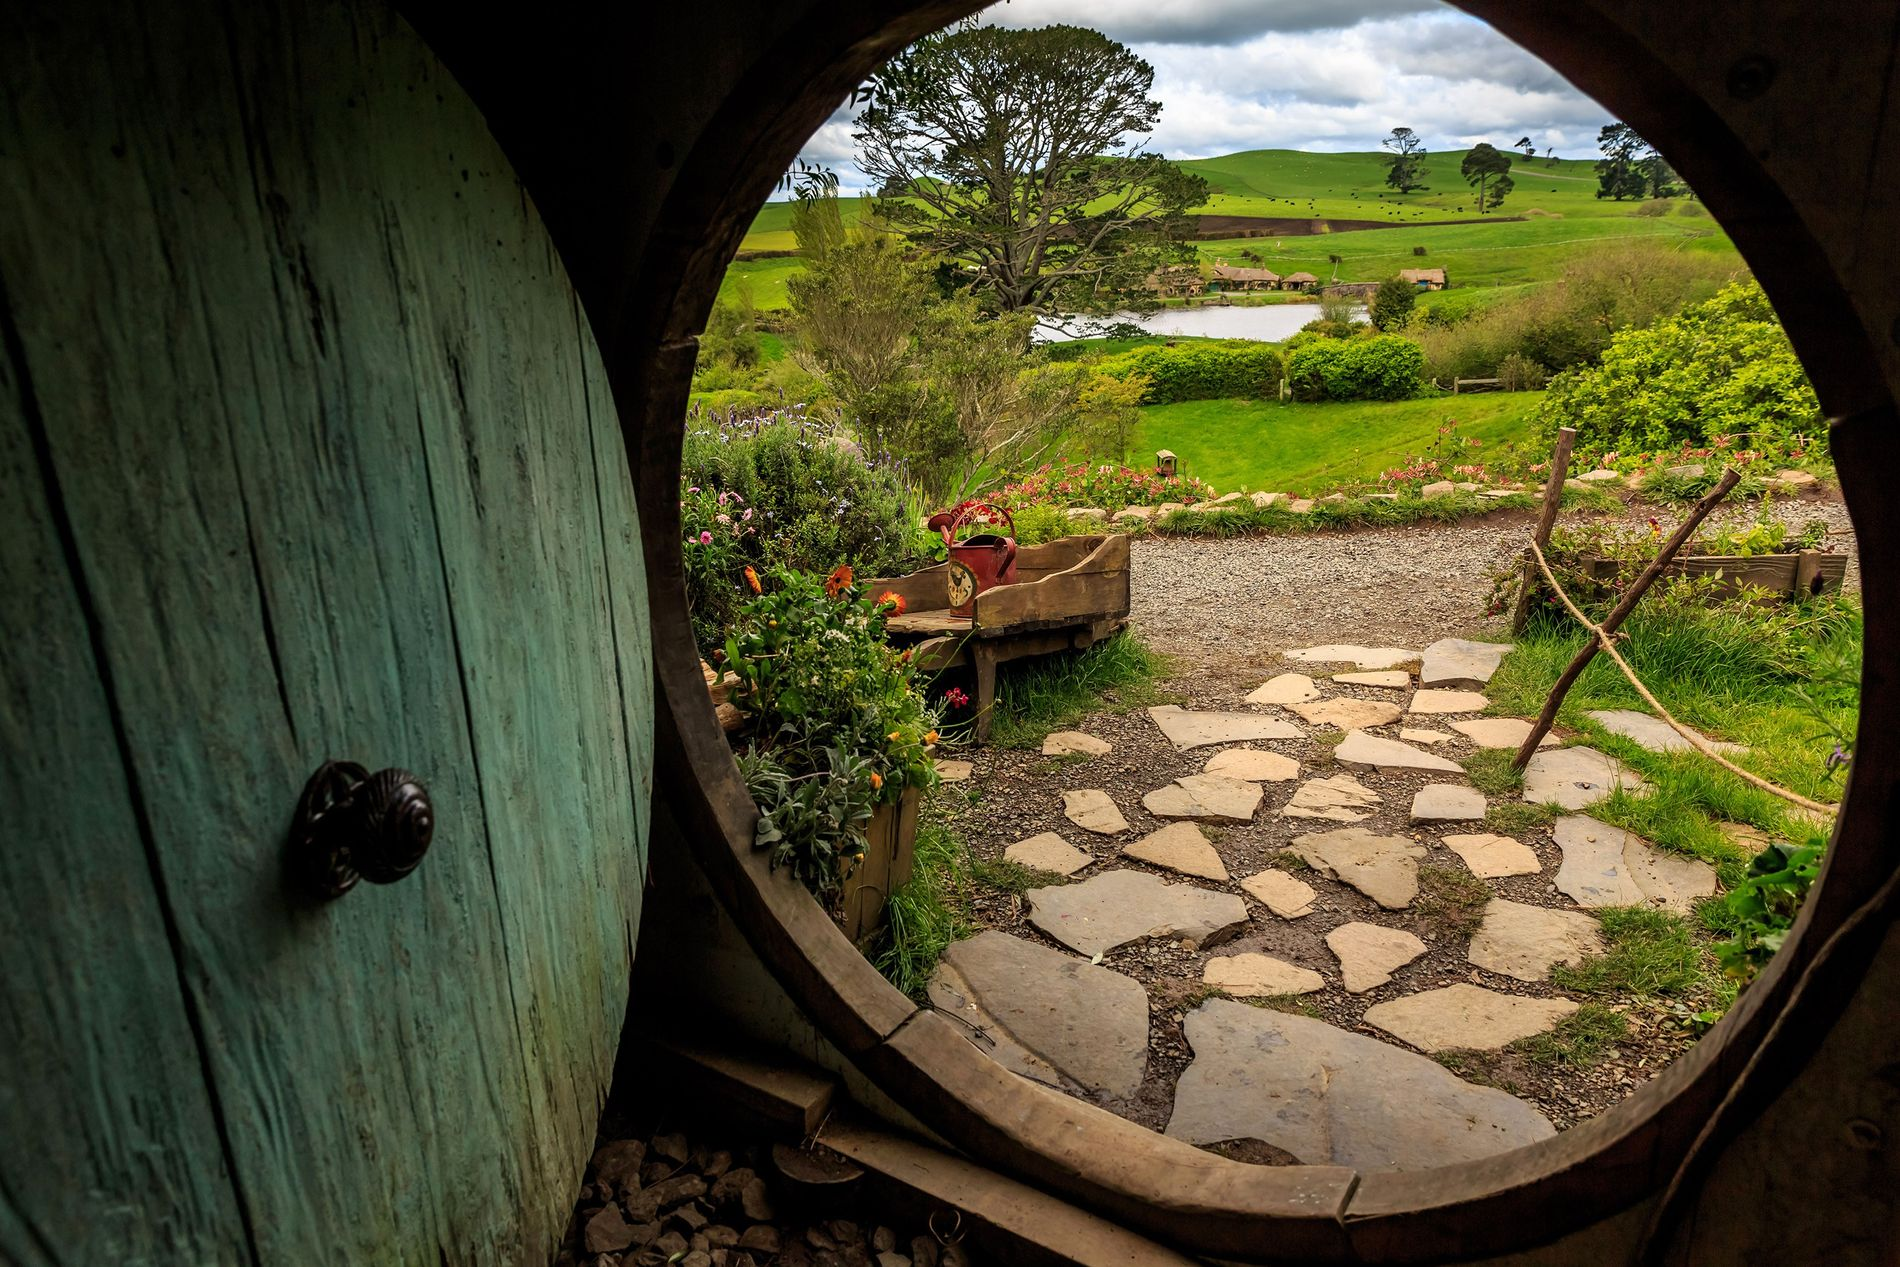 The hobbit holes of the North Island's Hobbiton movie set act as a portal to New Zealand's film legacy.